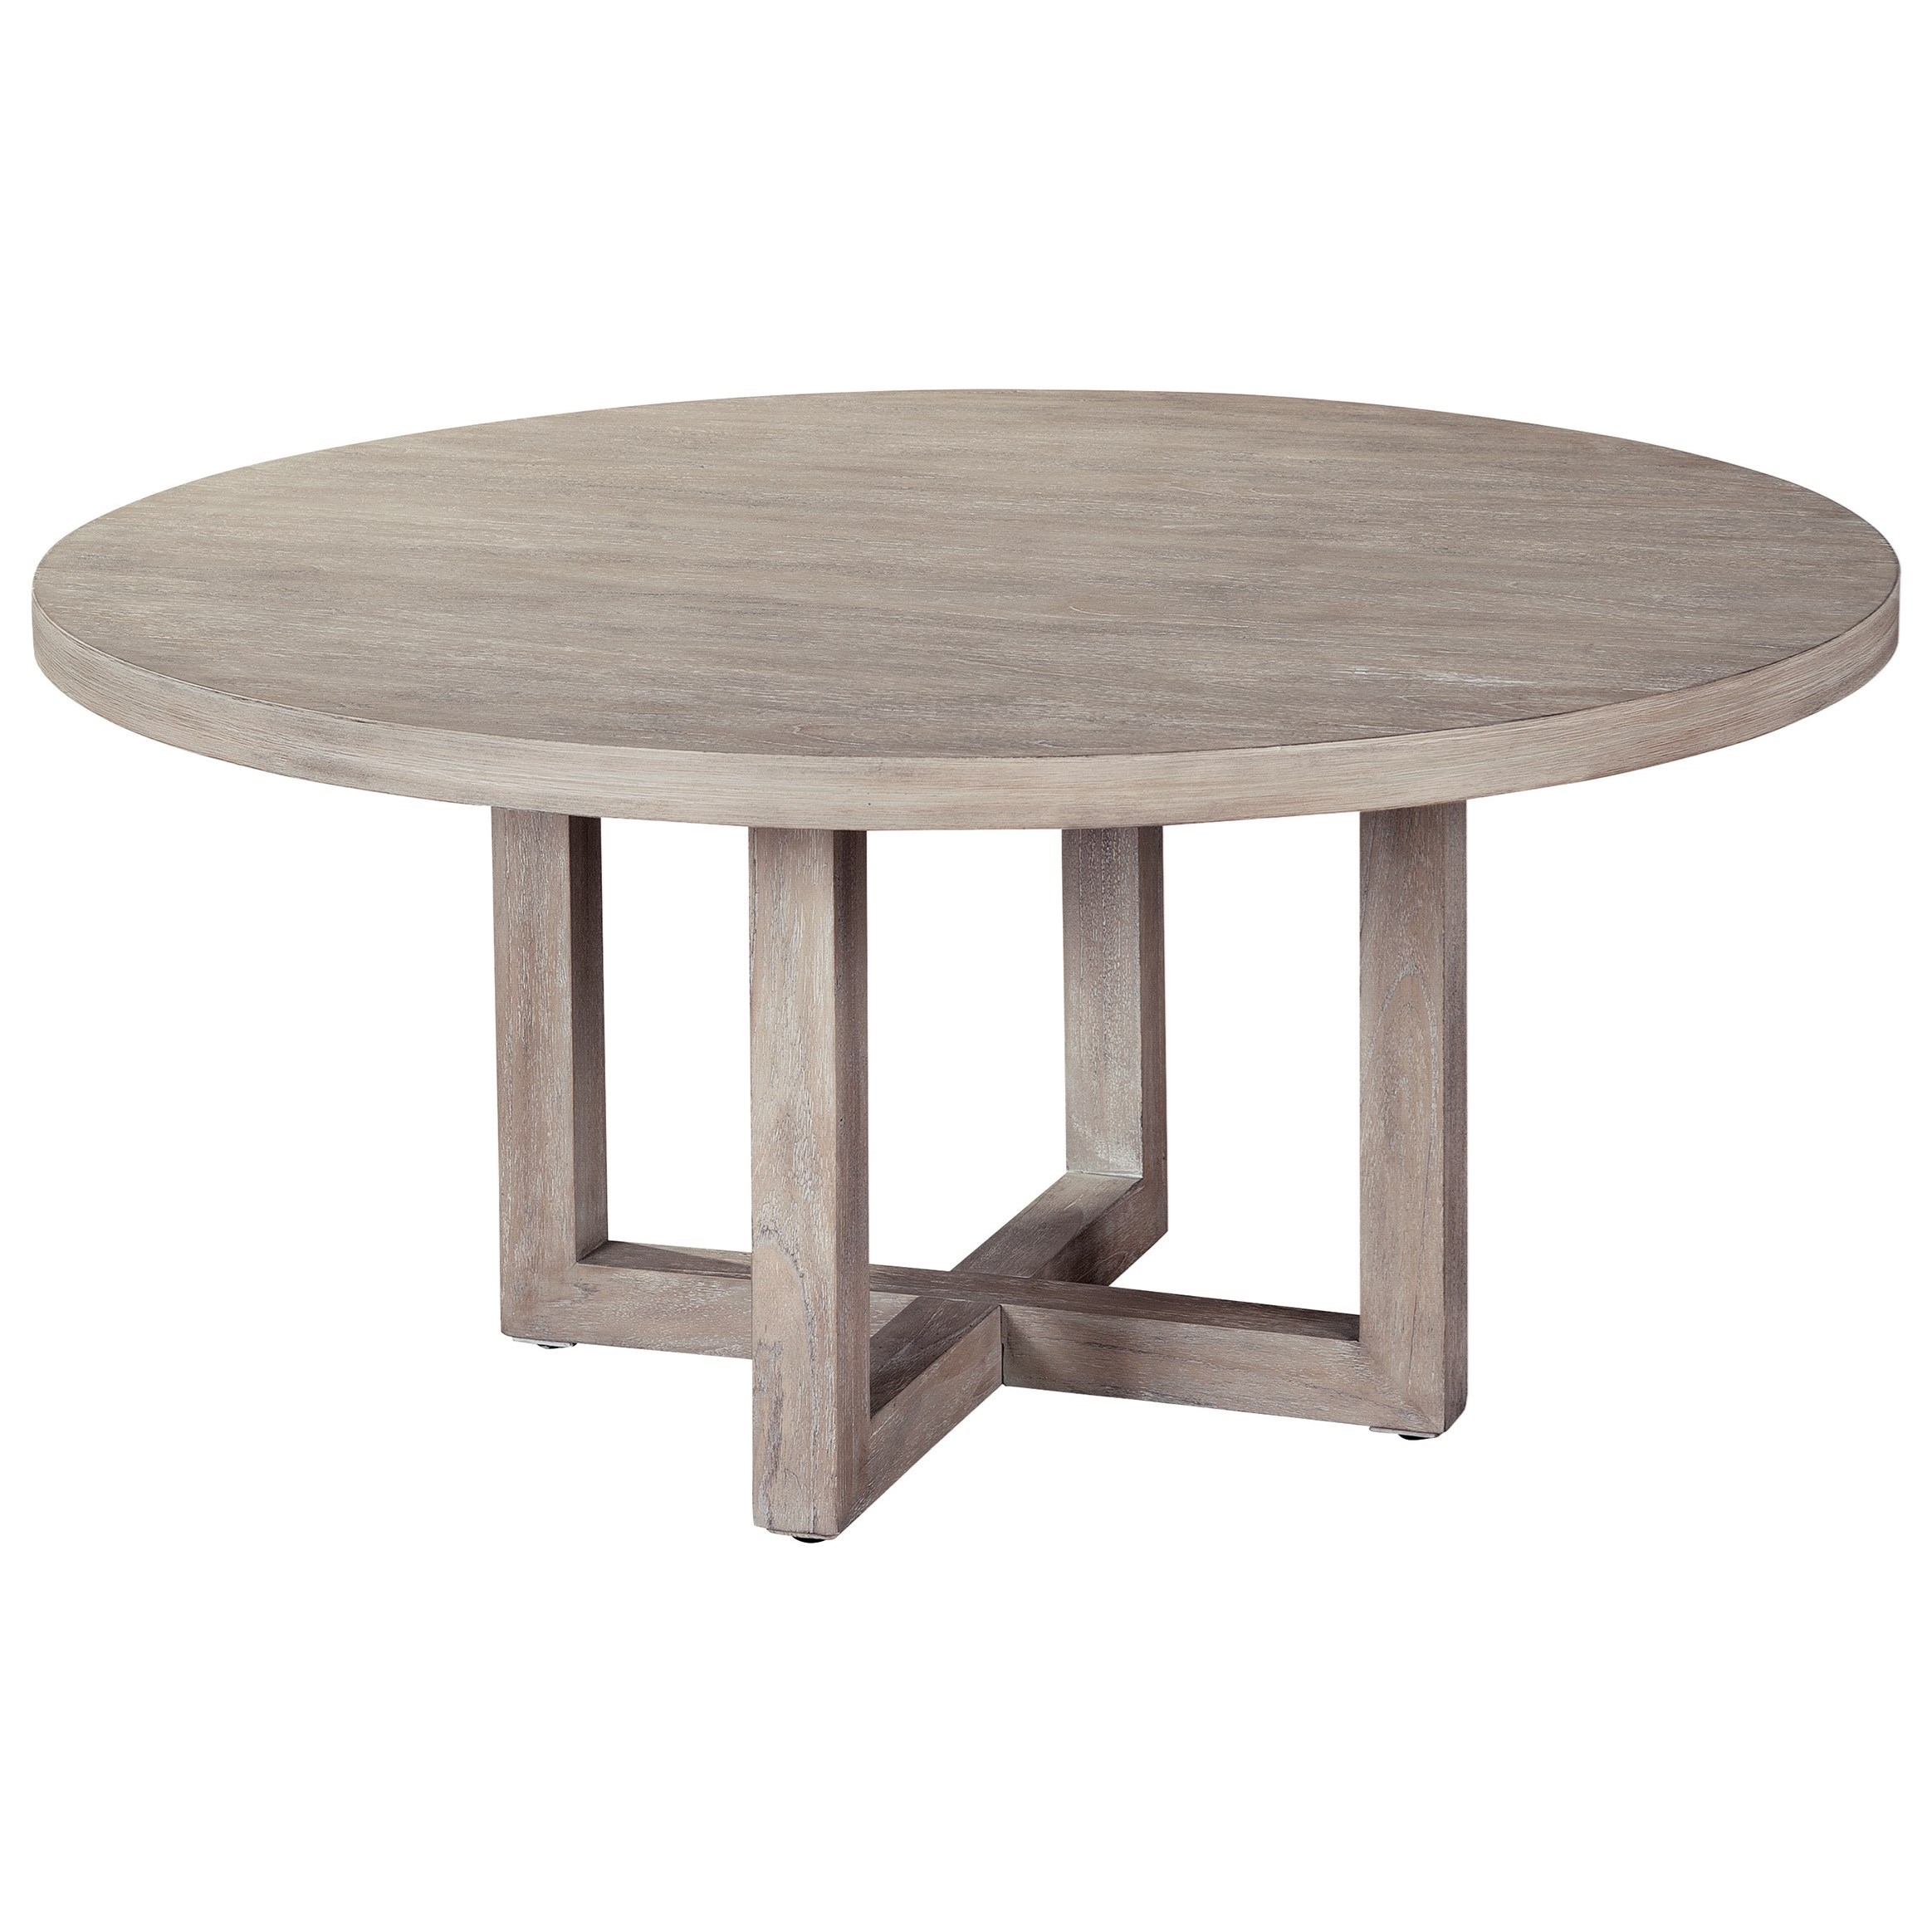 Berkeley Heights Round Coffee Table by Hekman at Sprintz Furniture